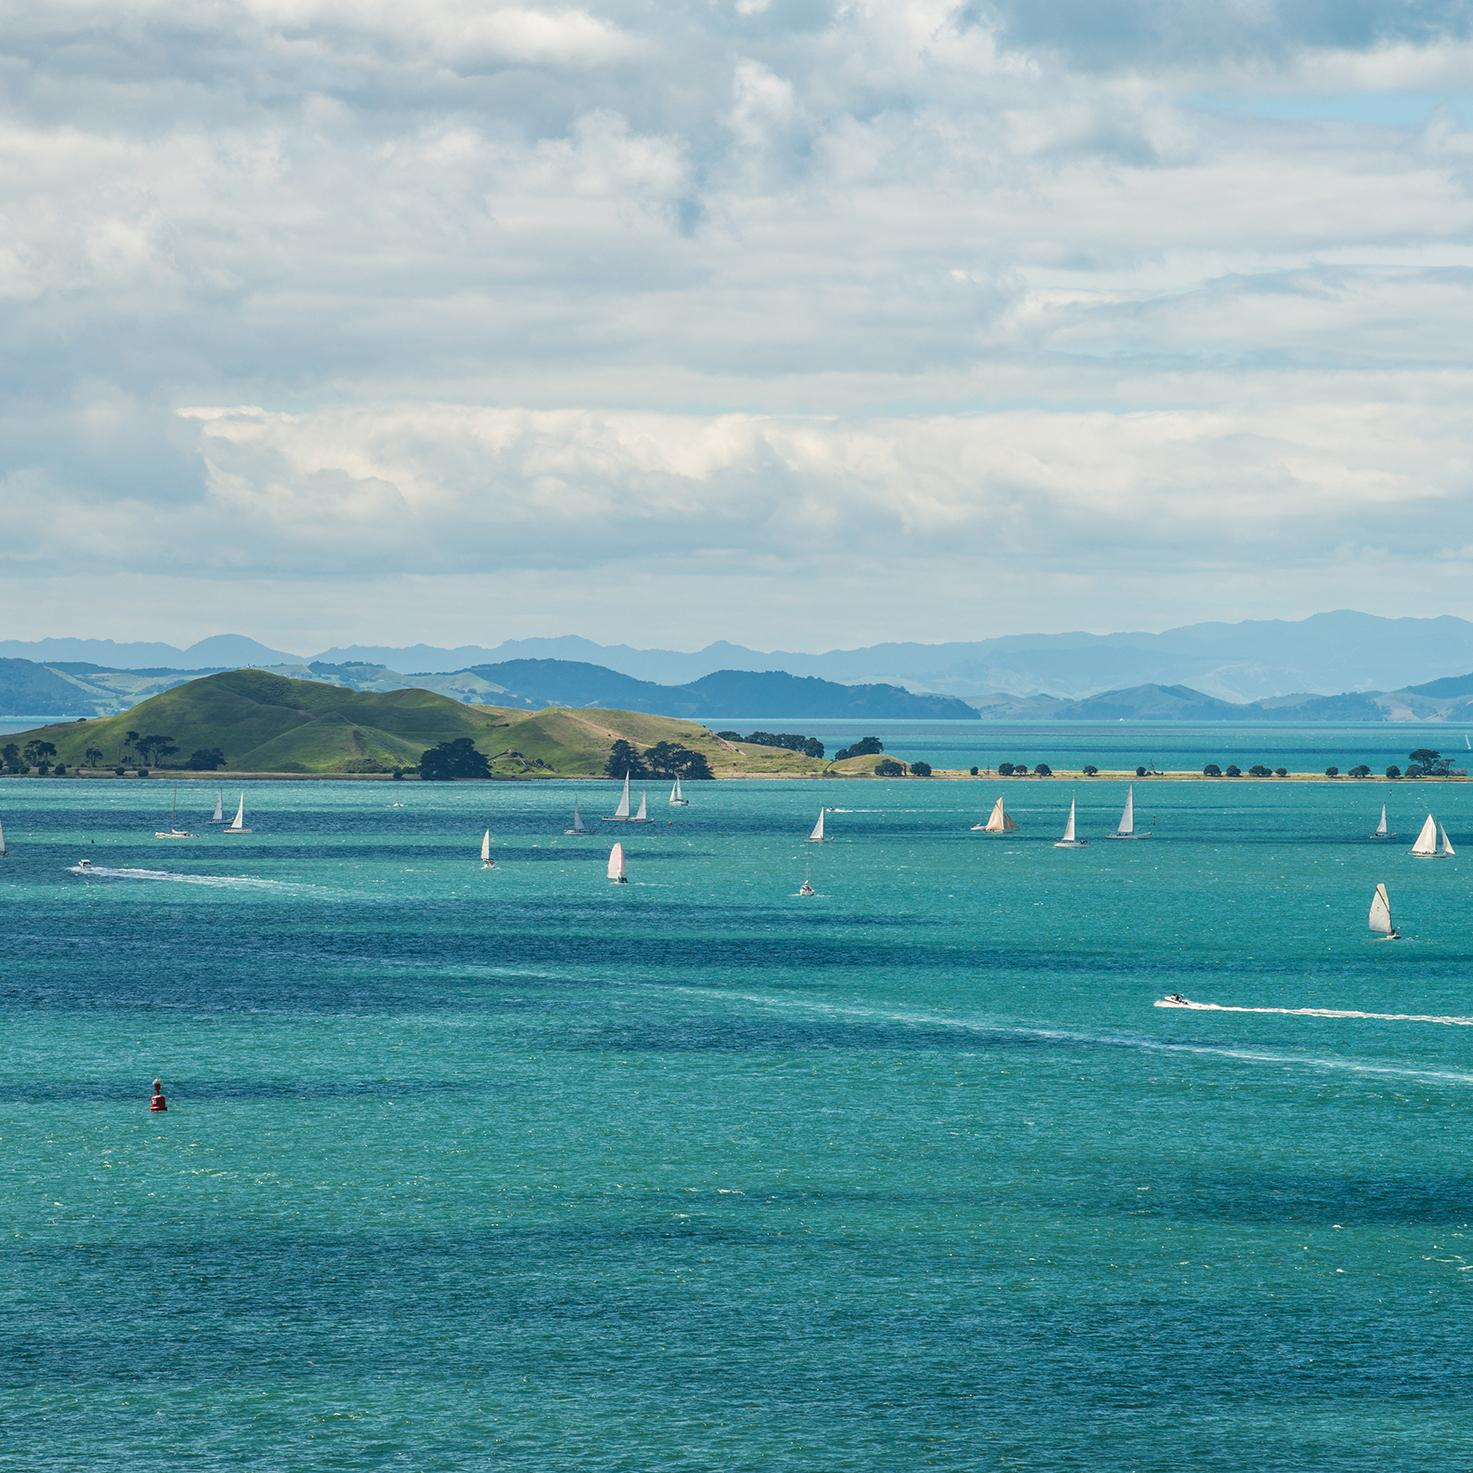 Sail in Auckland's famous Hauraki Gulf with New Zealand vacation packages